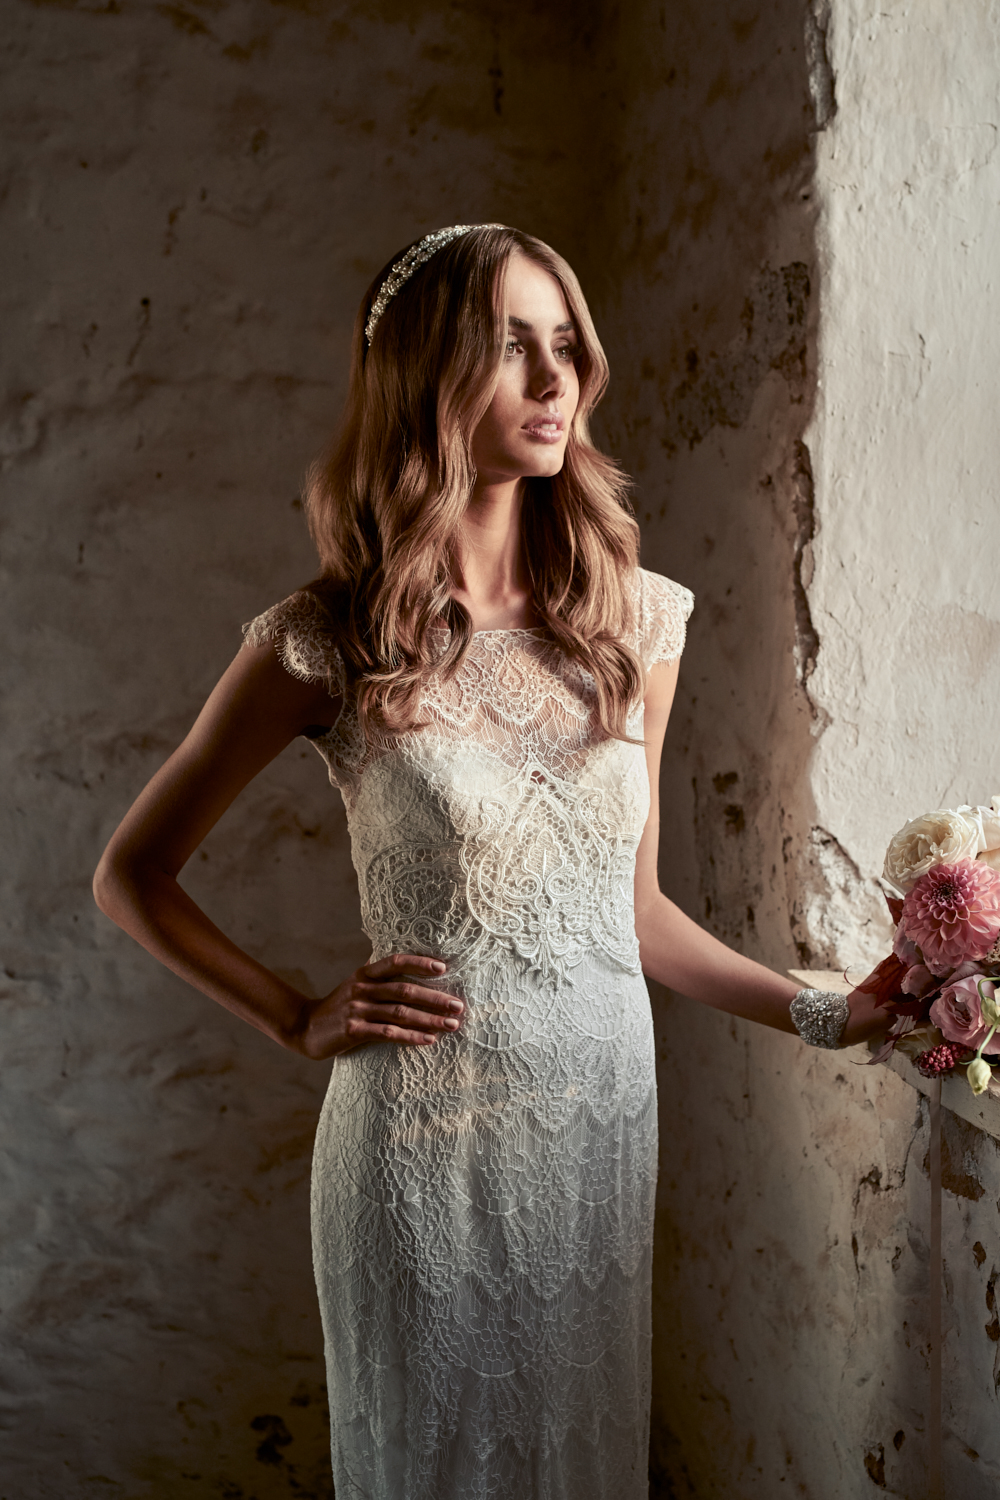 Bella - Channeling understated romance and classic bridal elegance, the Bella is both youthful and timeless. A topper of fine ivory lace, finished with a high illusion neckline and delicate capped sleeves, is worn with the strapless Brooklyn sweetheart bodice dress. As the topper will come unattached to the strapless bodice, the Bella is the perfect dress to create different ceremony and reception looks – simply remove the topper after the ceremony for a strapless reception gown!